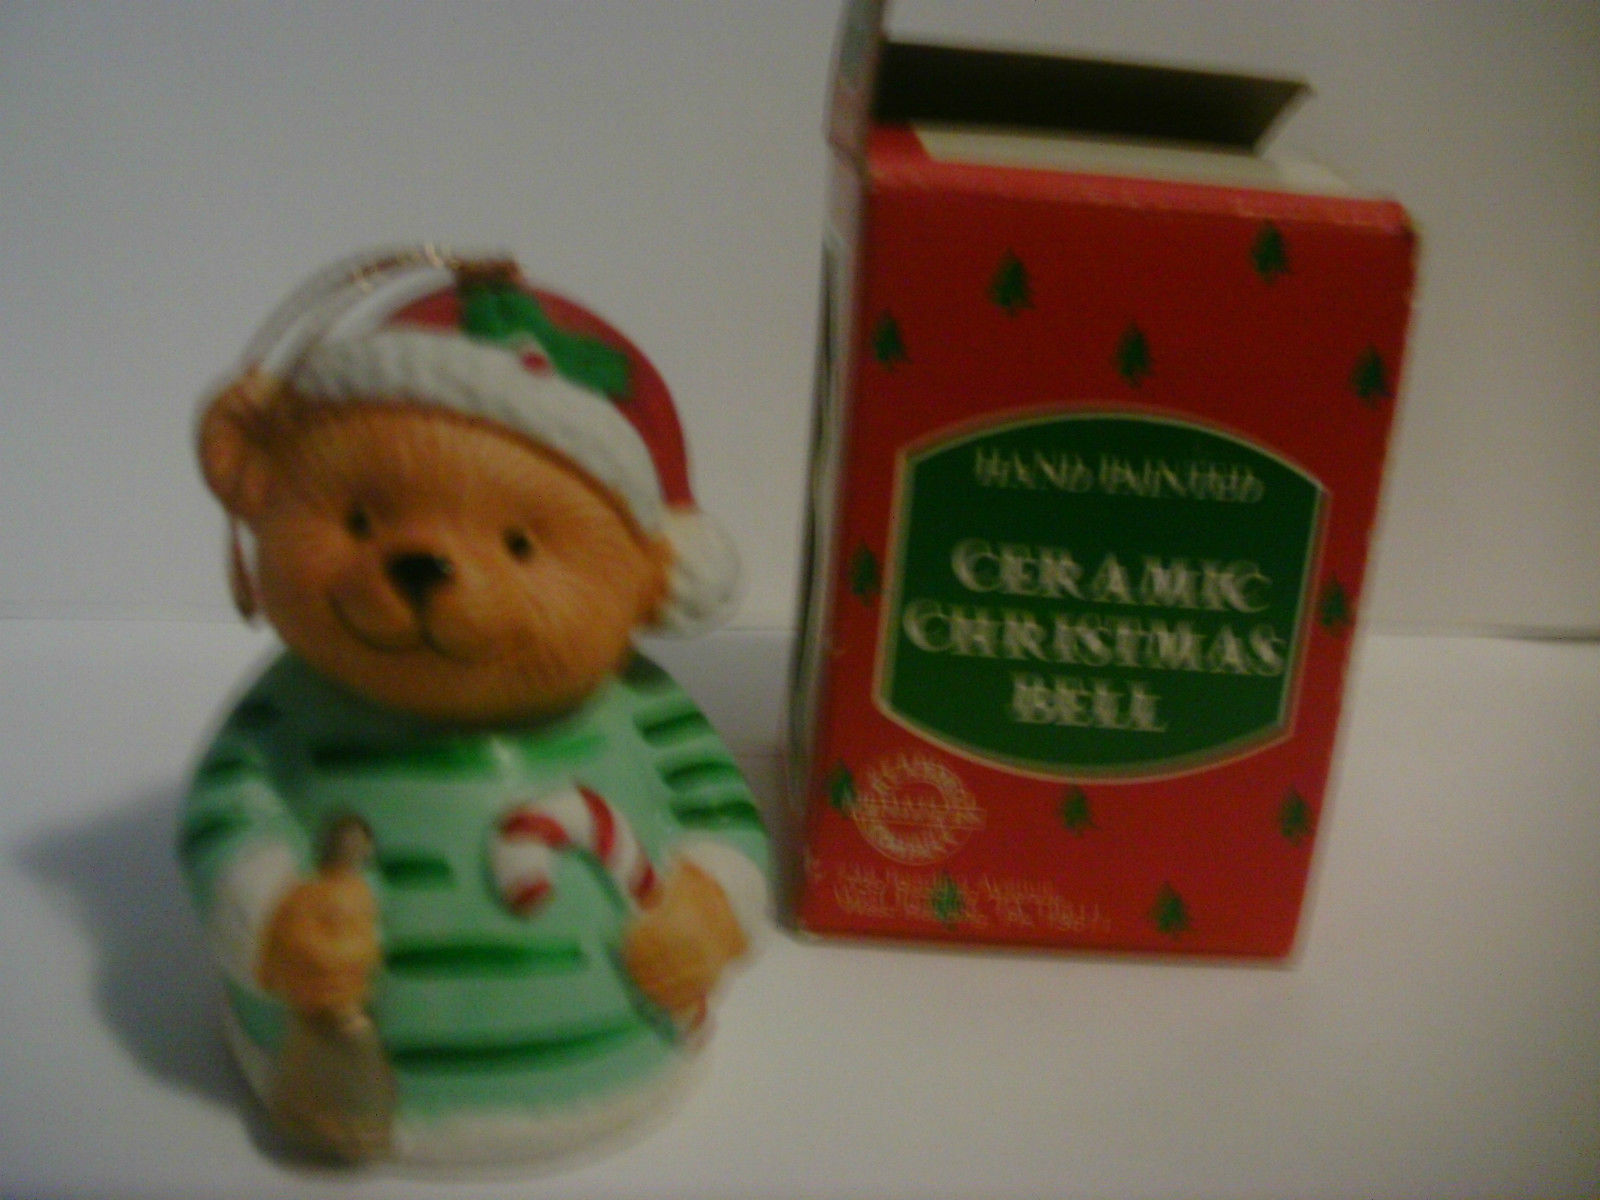 Ceramic Christmas Bell Hand Painted Bear image 2